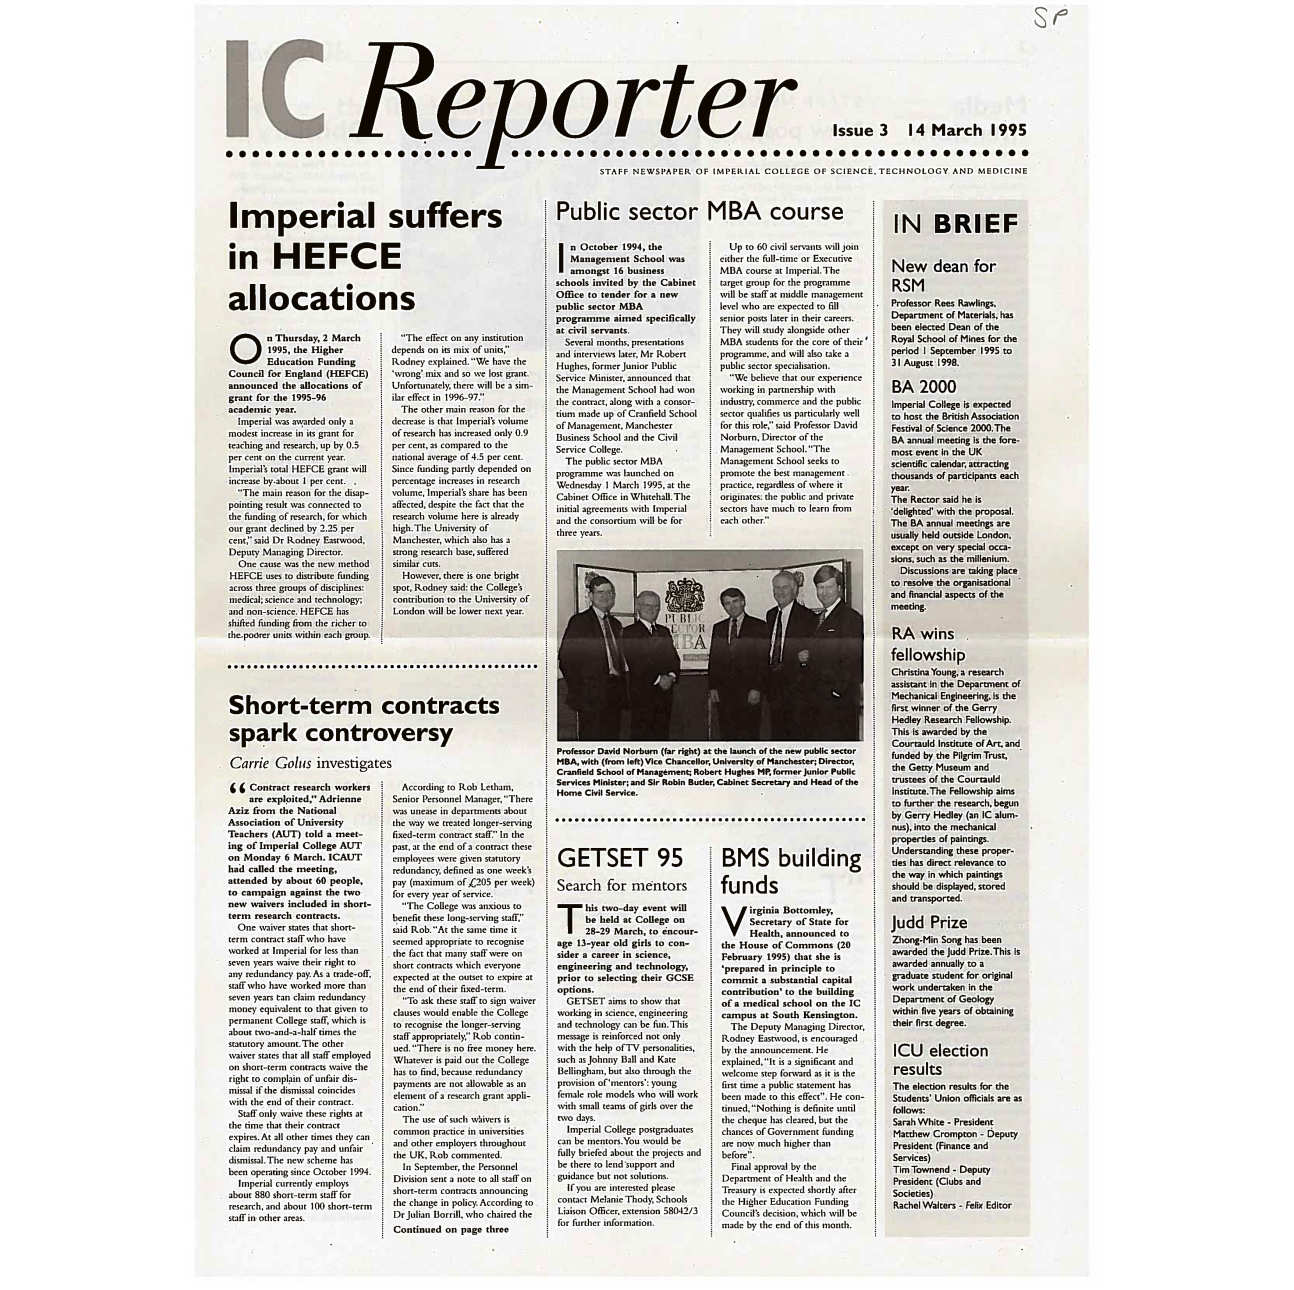 Issue 3, 14 March 1995